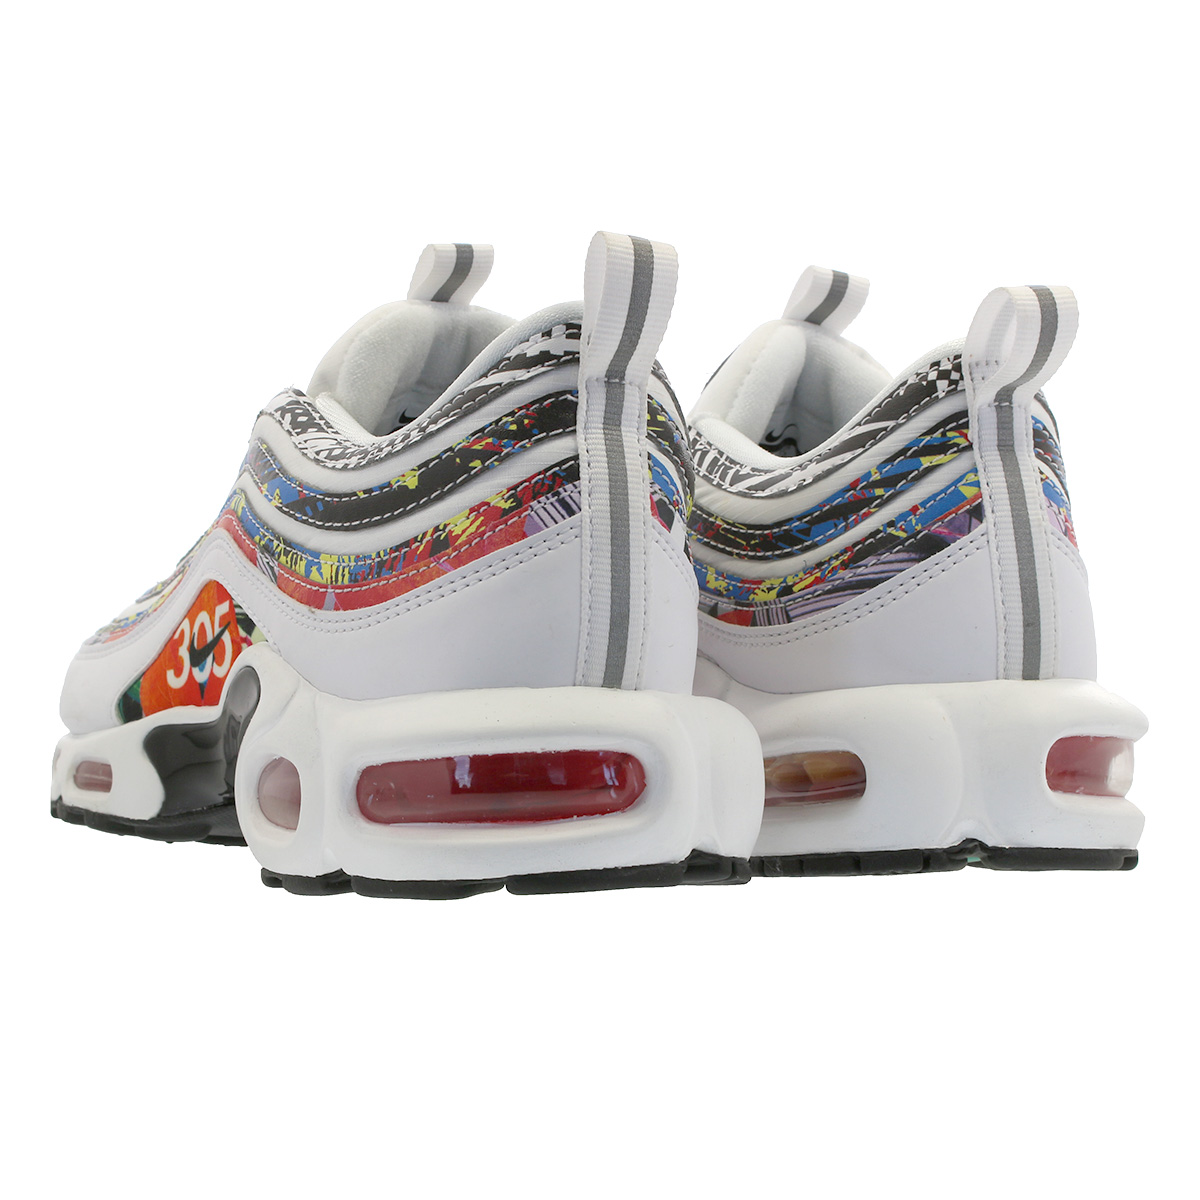 05499712f6 ... NIKE AIR MAX PLUS 97 Kie Ney AMAX +97 WHITE/BLACK/HABANERO RED ...